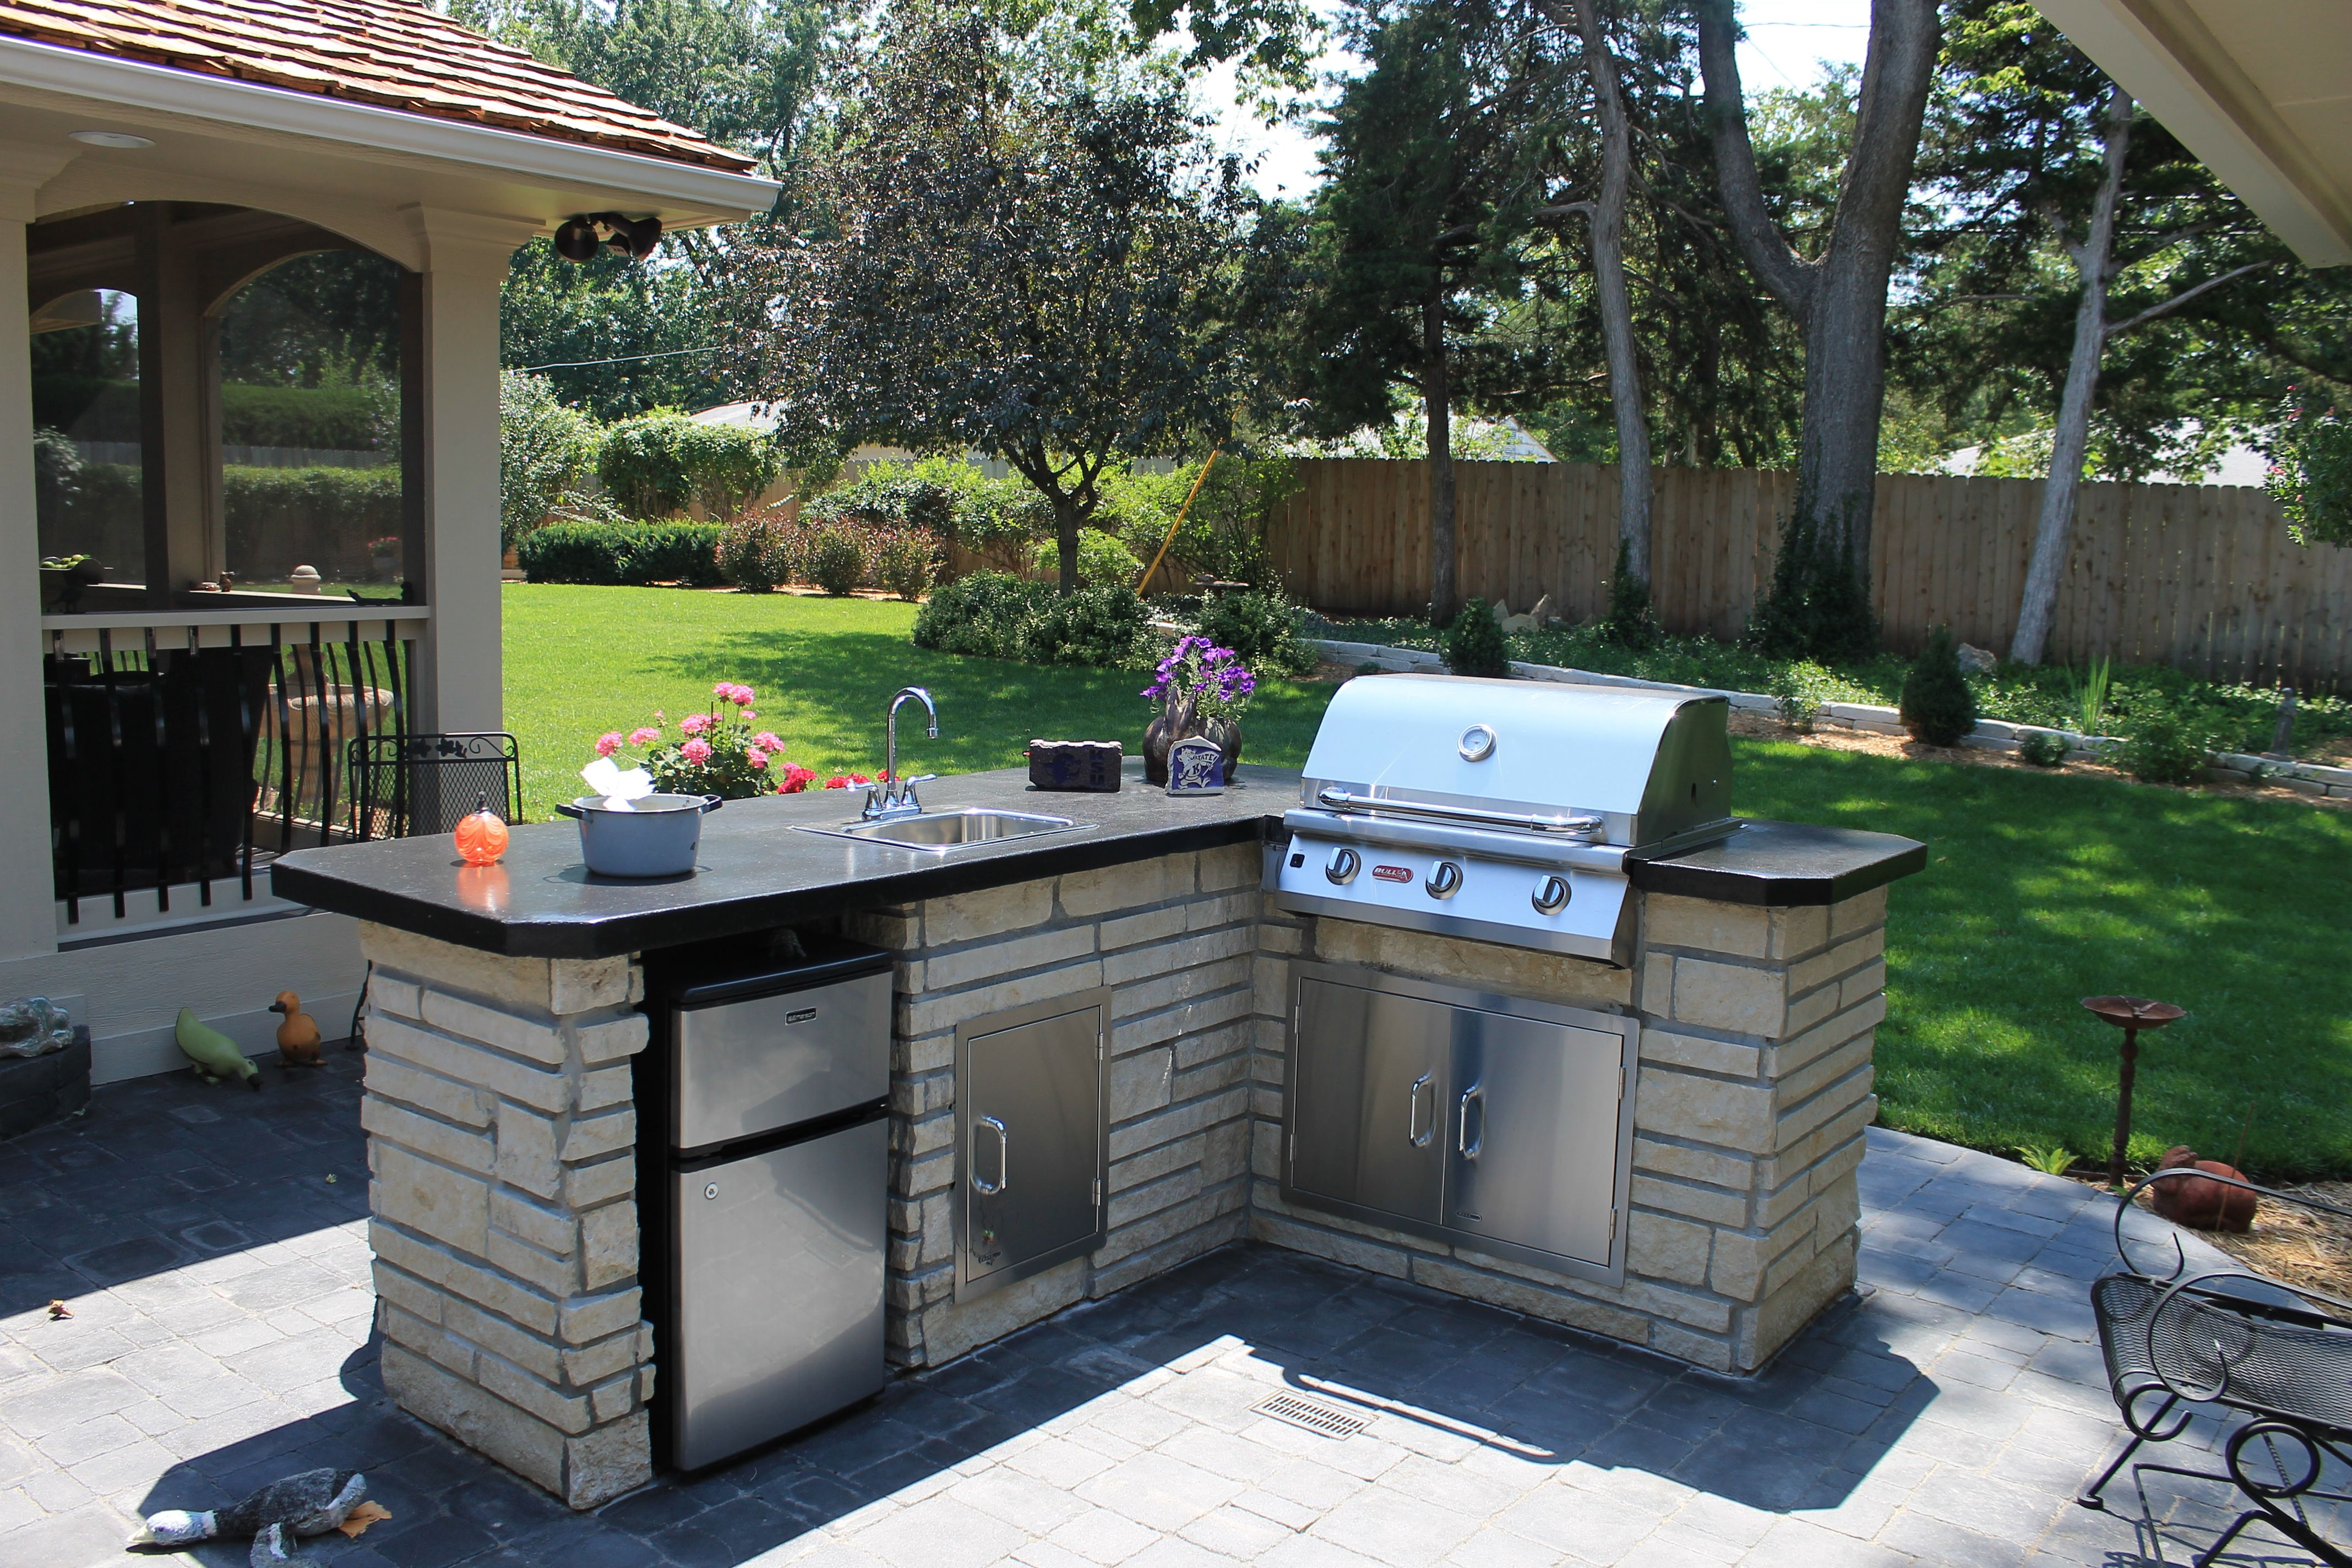 Poured concrete top with a sink and grill in set. Natural gas is hooked up to the grill.